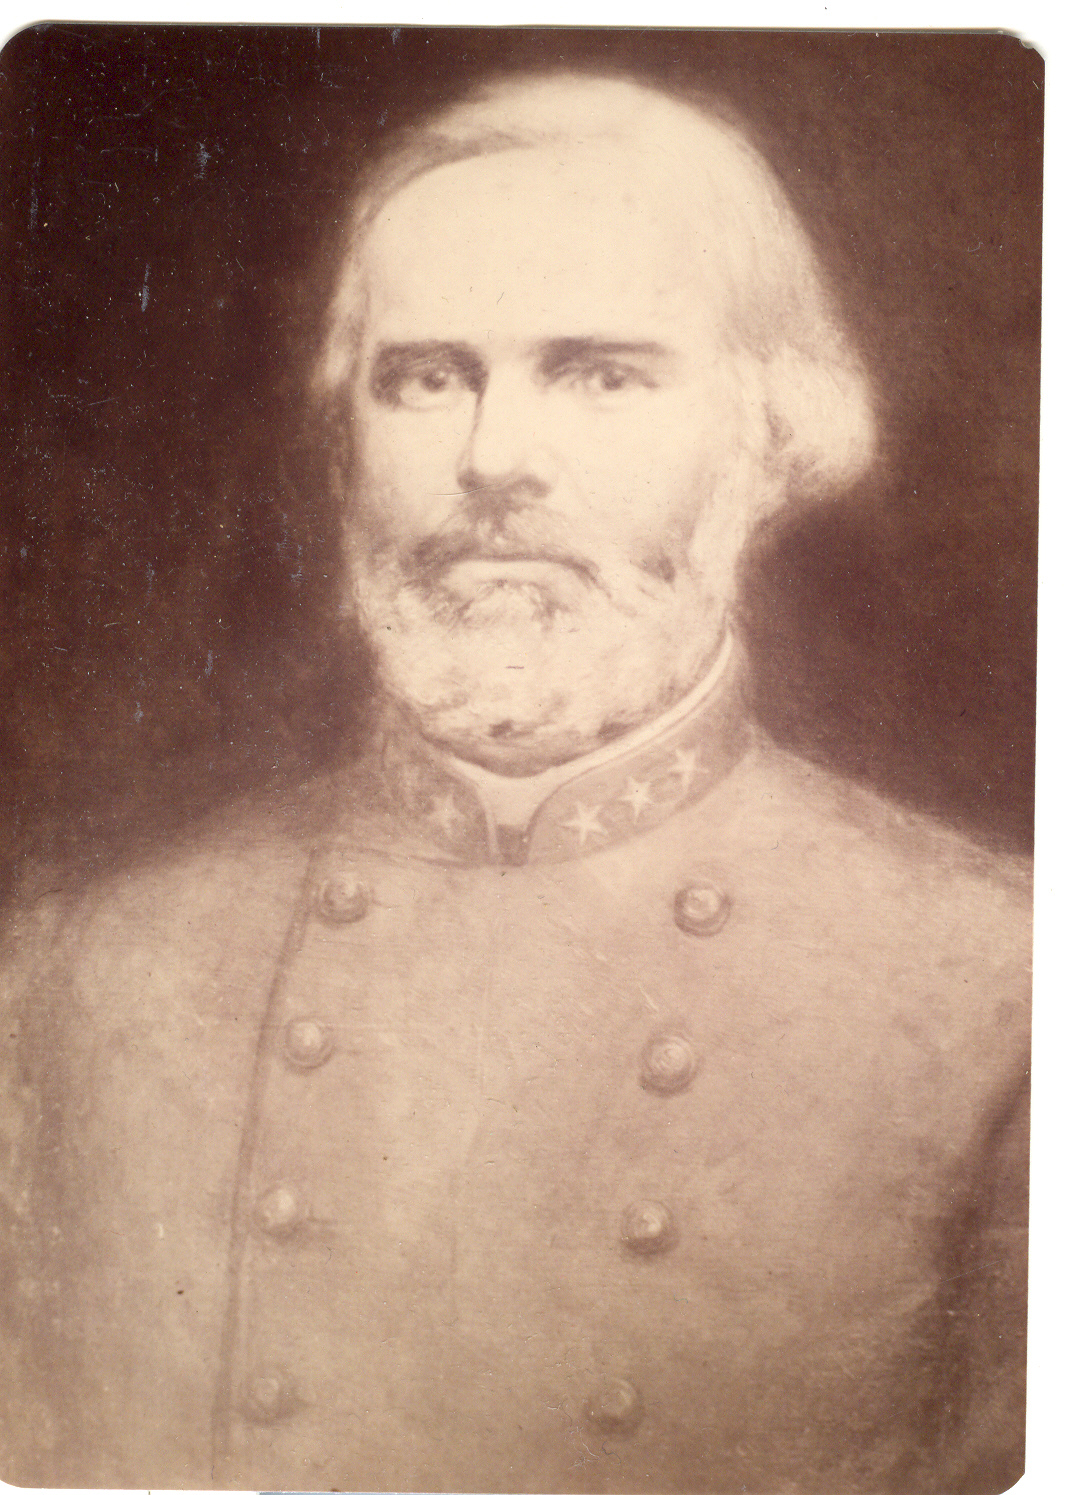 John Luther Bridgers, third major owner of the house from 1850-1880, served as Captain of the Edgecombe Guards in the Civil War.